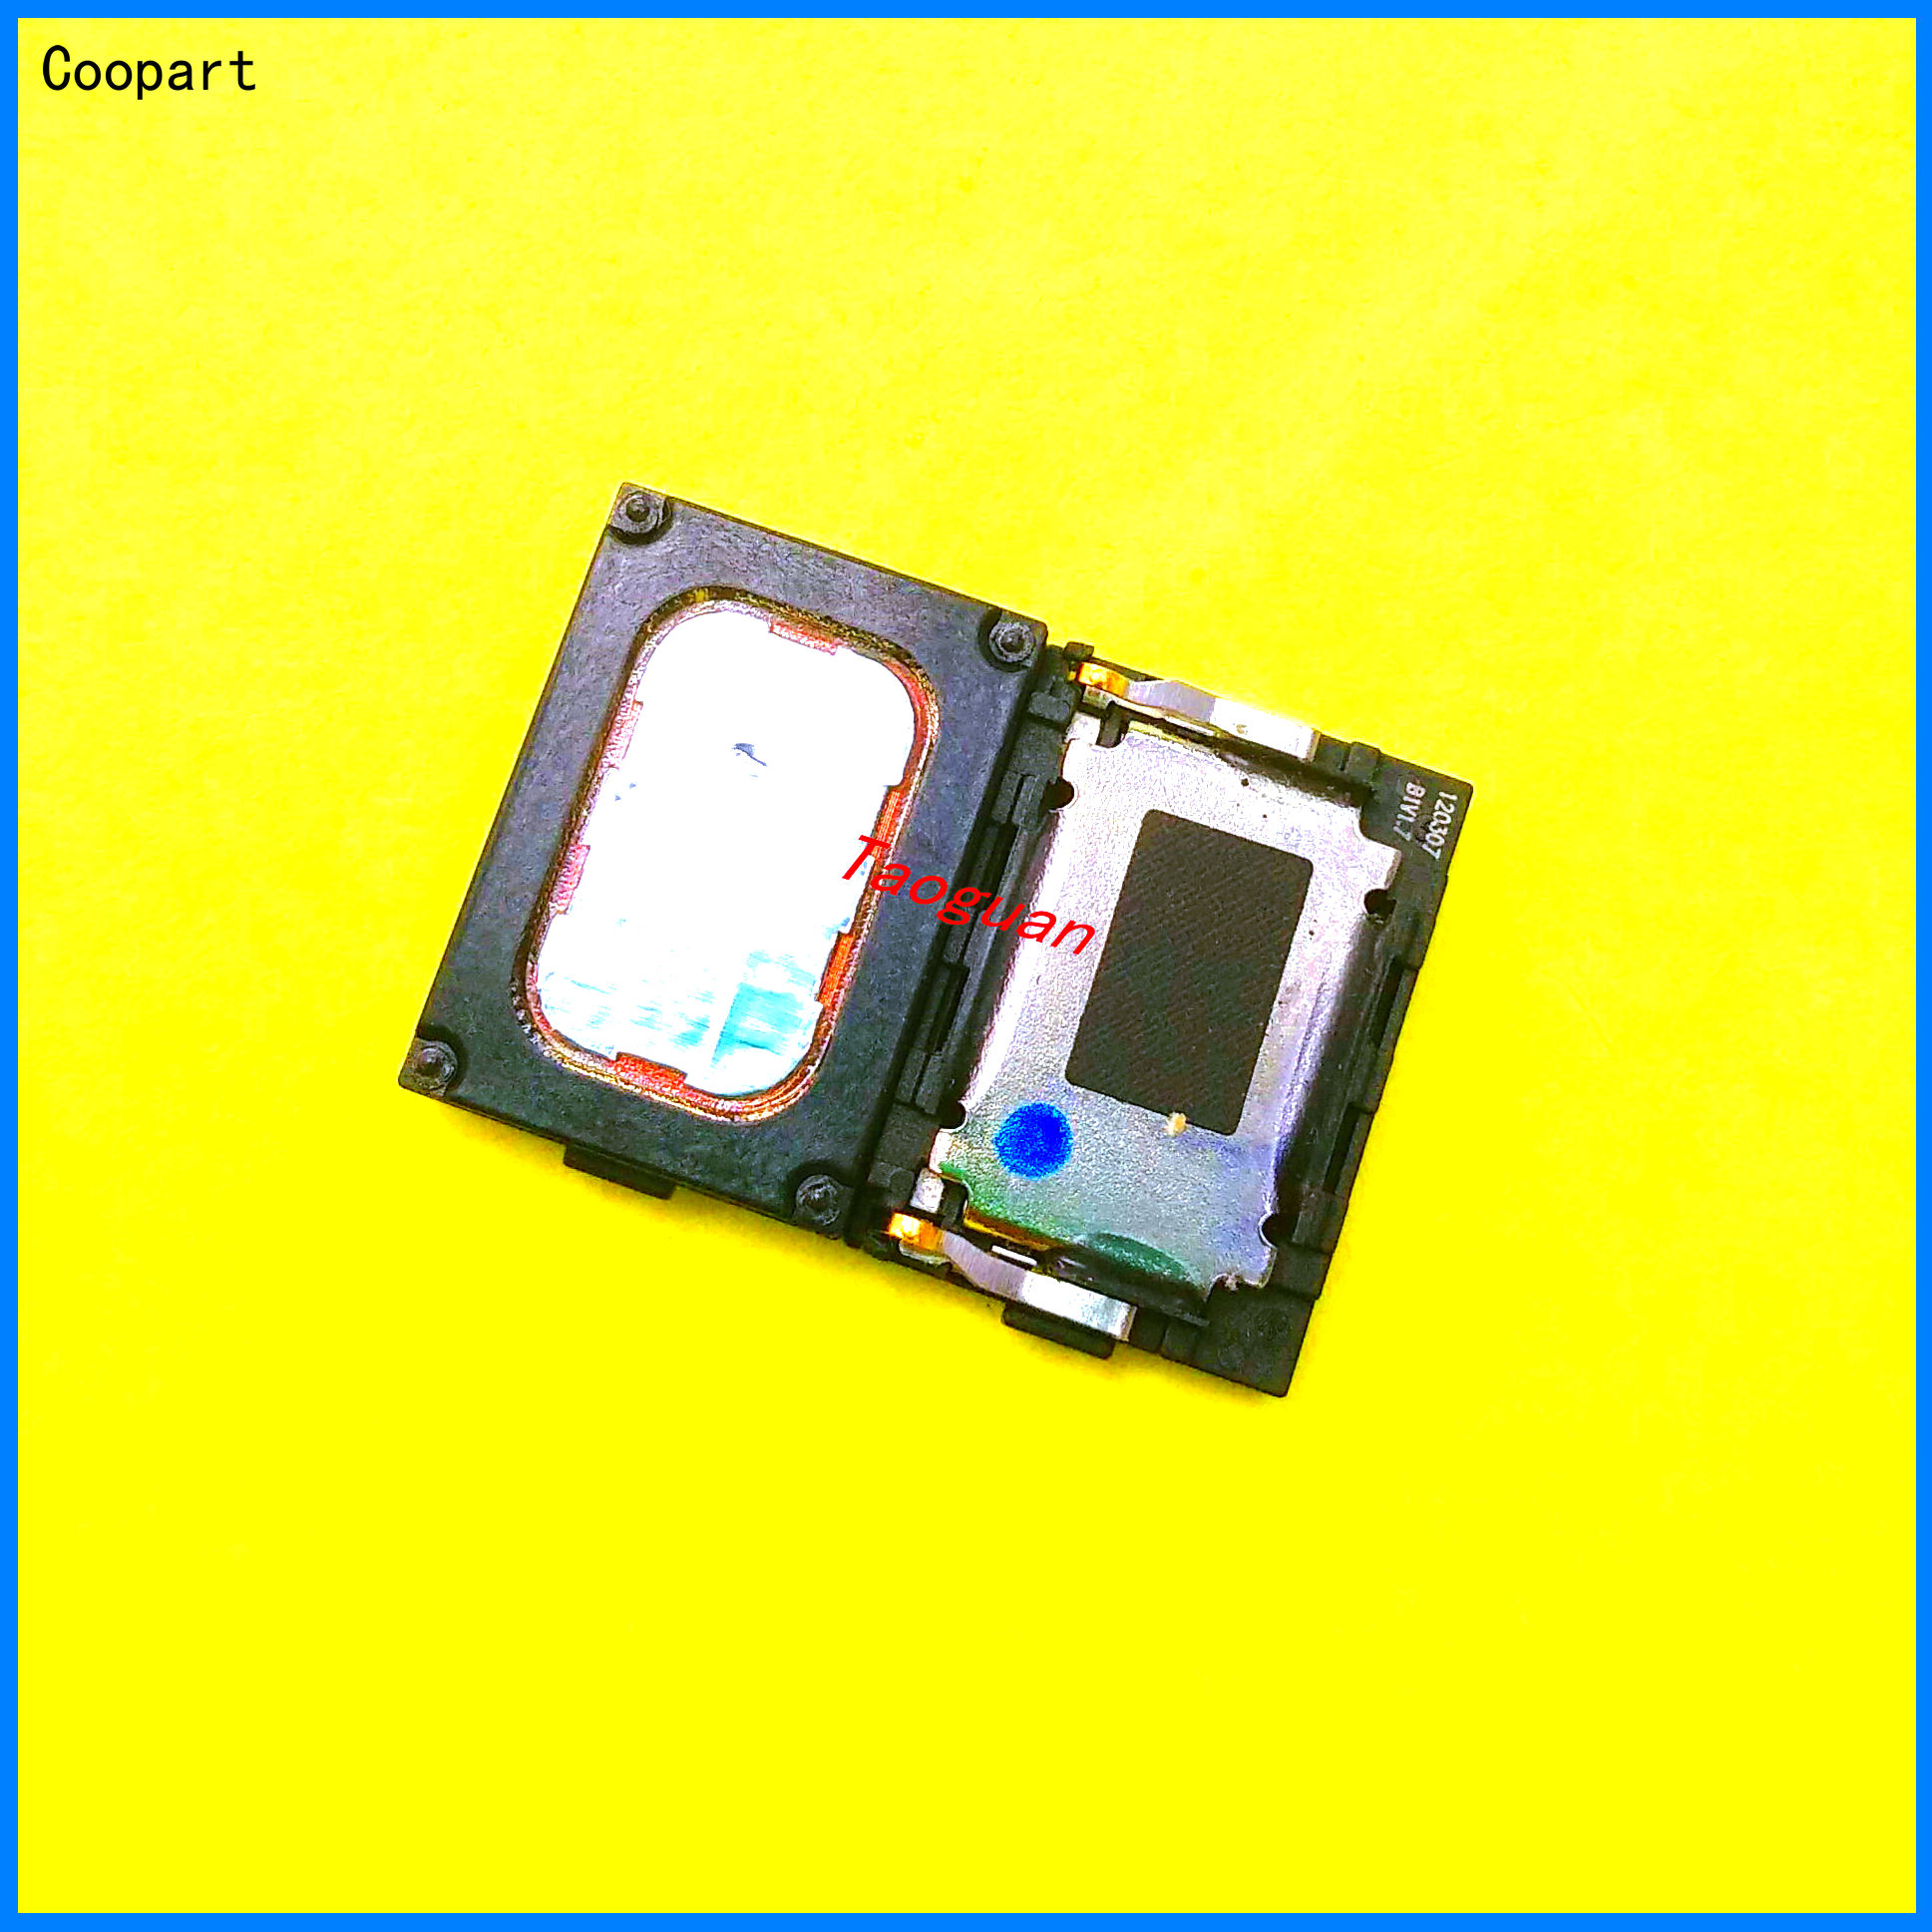 2pcs/lot Coopart New Buzzer Loud Music Speaker Ringer For Sony Xperia E1 D2004 D2005 DUAL D2104 D2105